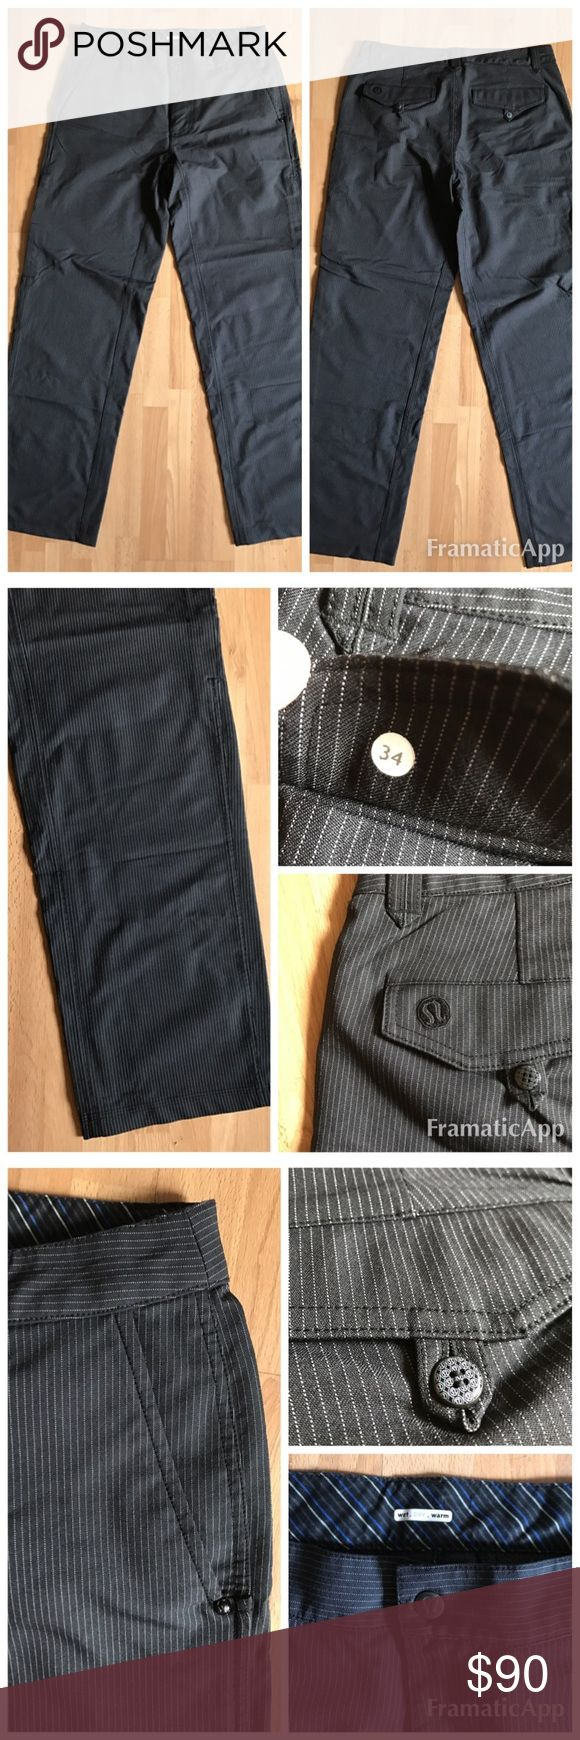 Lululemon Men's Endeavor Pants size 34 RARE! Mint! Lululemon  Men's Pintripe Endeavor Pants- RARE- Pristine! $99 size 34. Very hard to find!   * Mid weight pant made for personal trainers to wear at work and play * Hockey Butt Fit - for those with athletic builds * Leg vents for high breathability * Soft moisture wicking inner waistband * Stretch fabric allows for a full range of motion * Preshrunk because you are a man lululemon athletica Pants